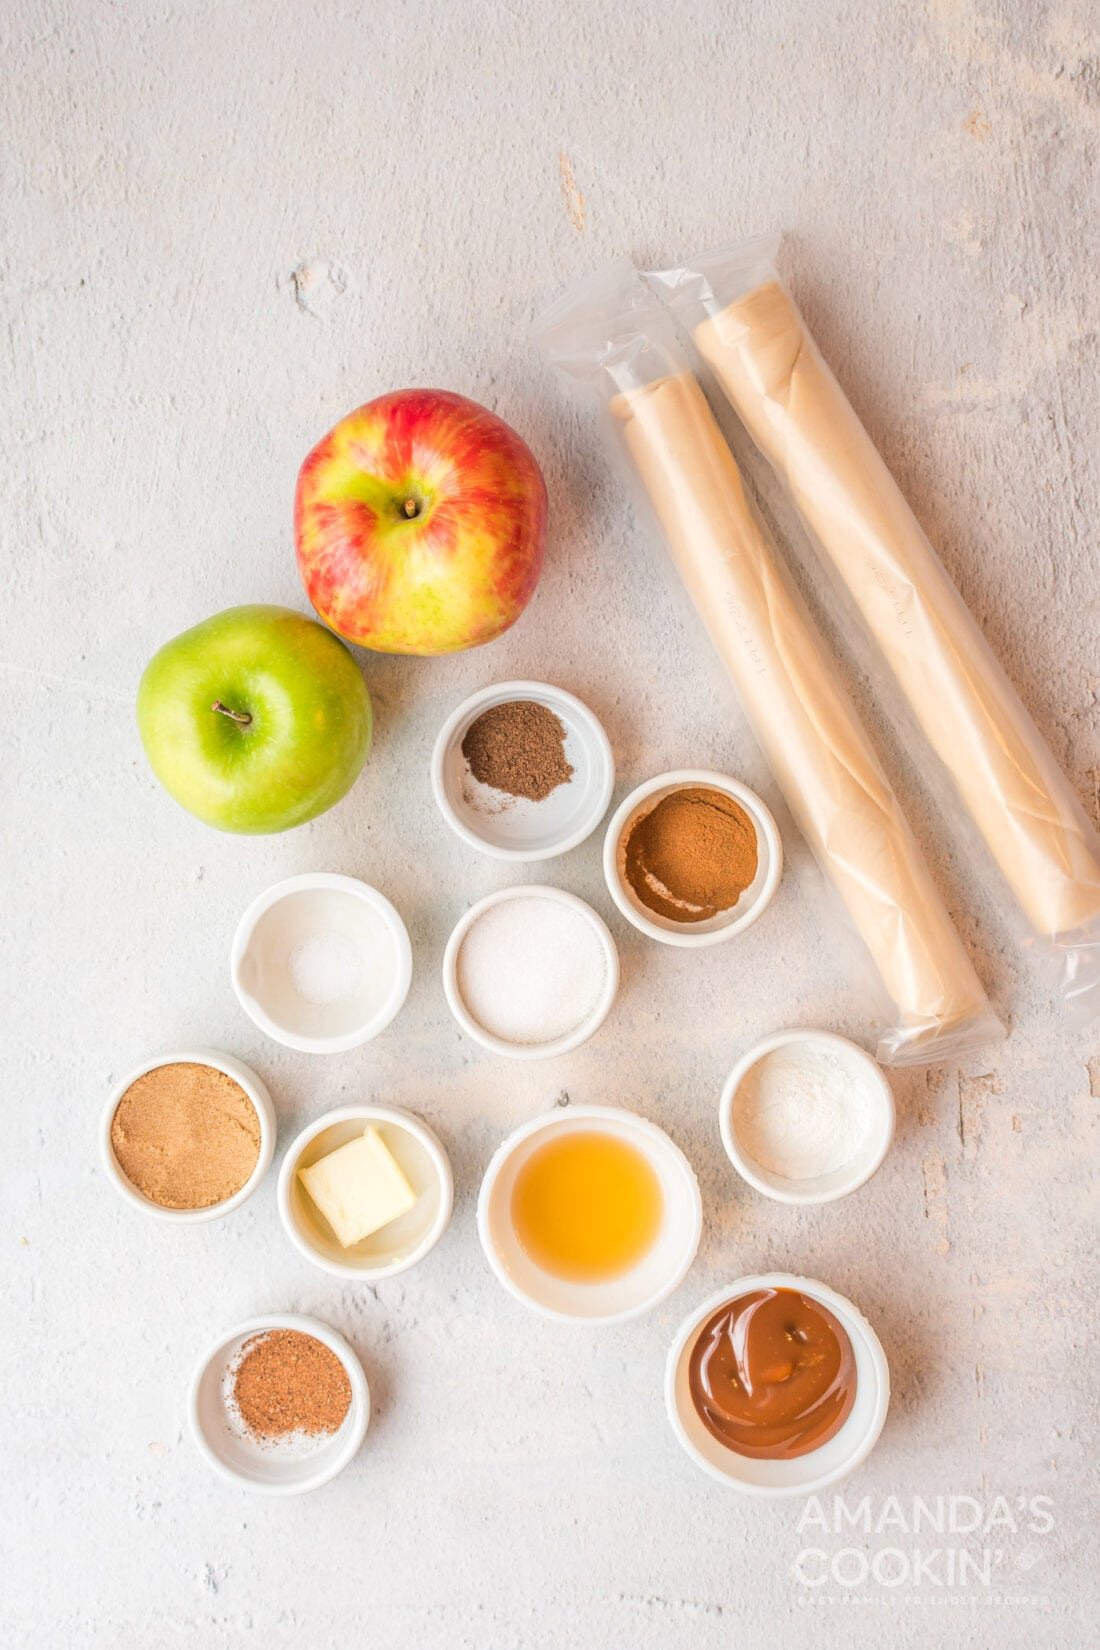 ingredients for Apple Hand Pies